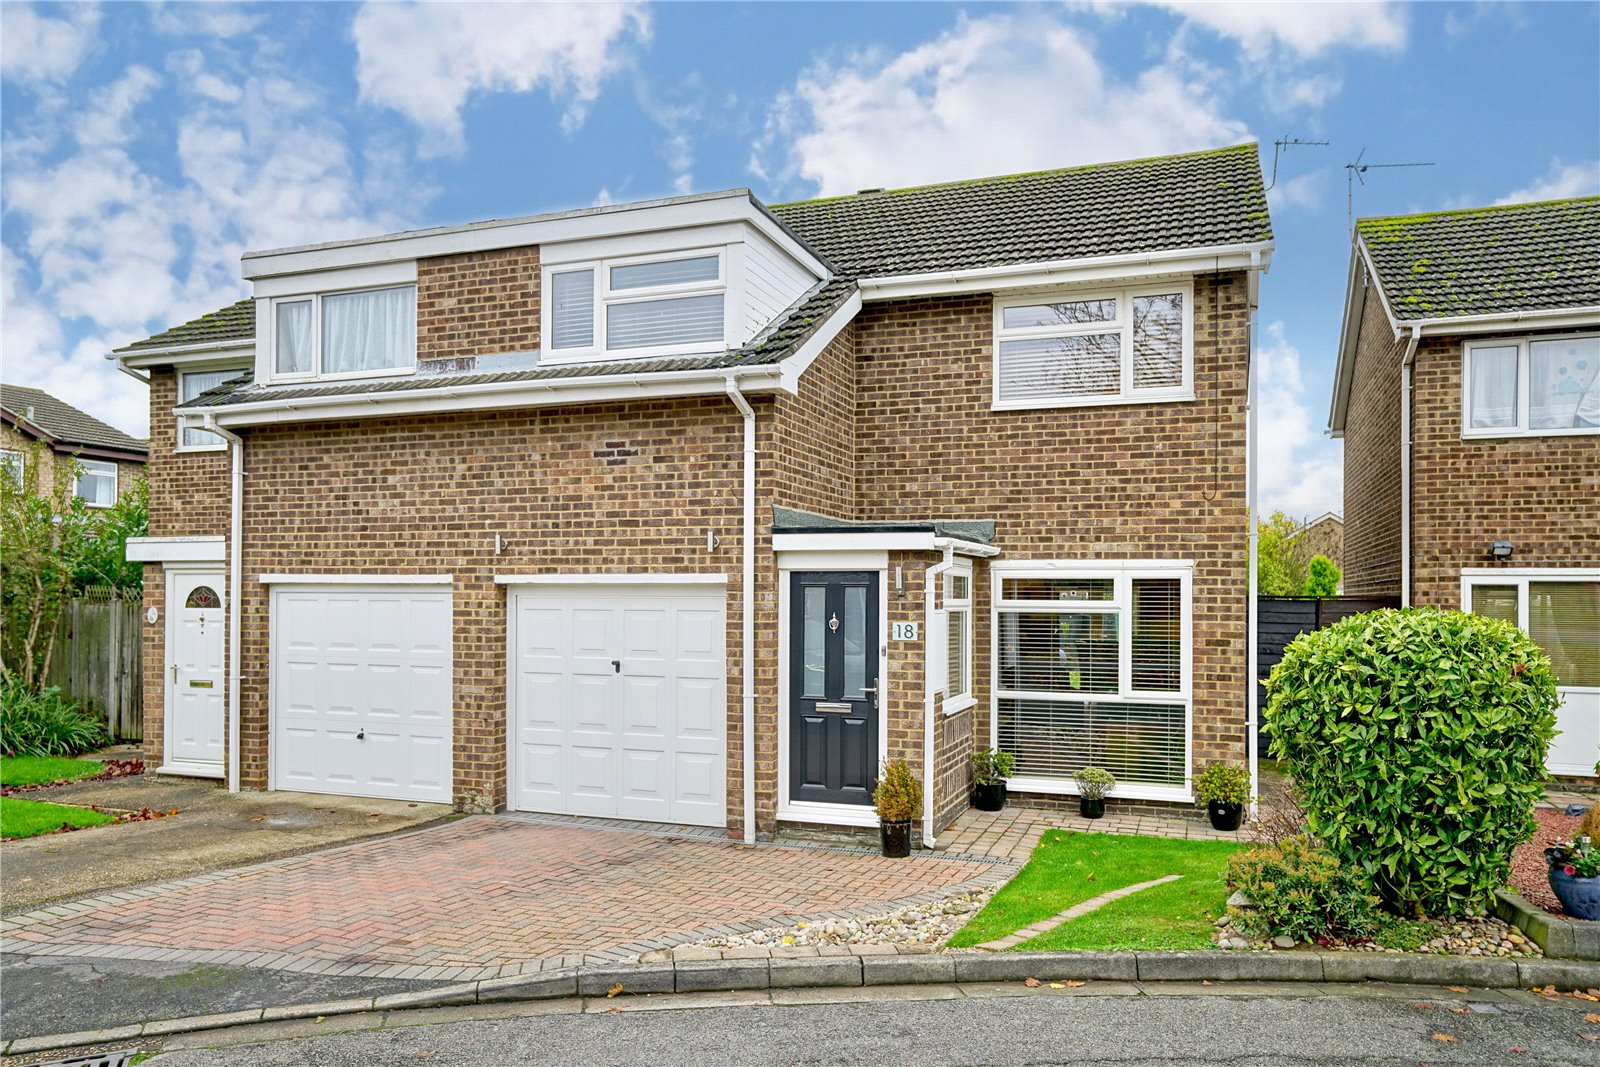 3 bed house for sale in Gainsborough Avenue, Eaton Ford 1